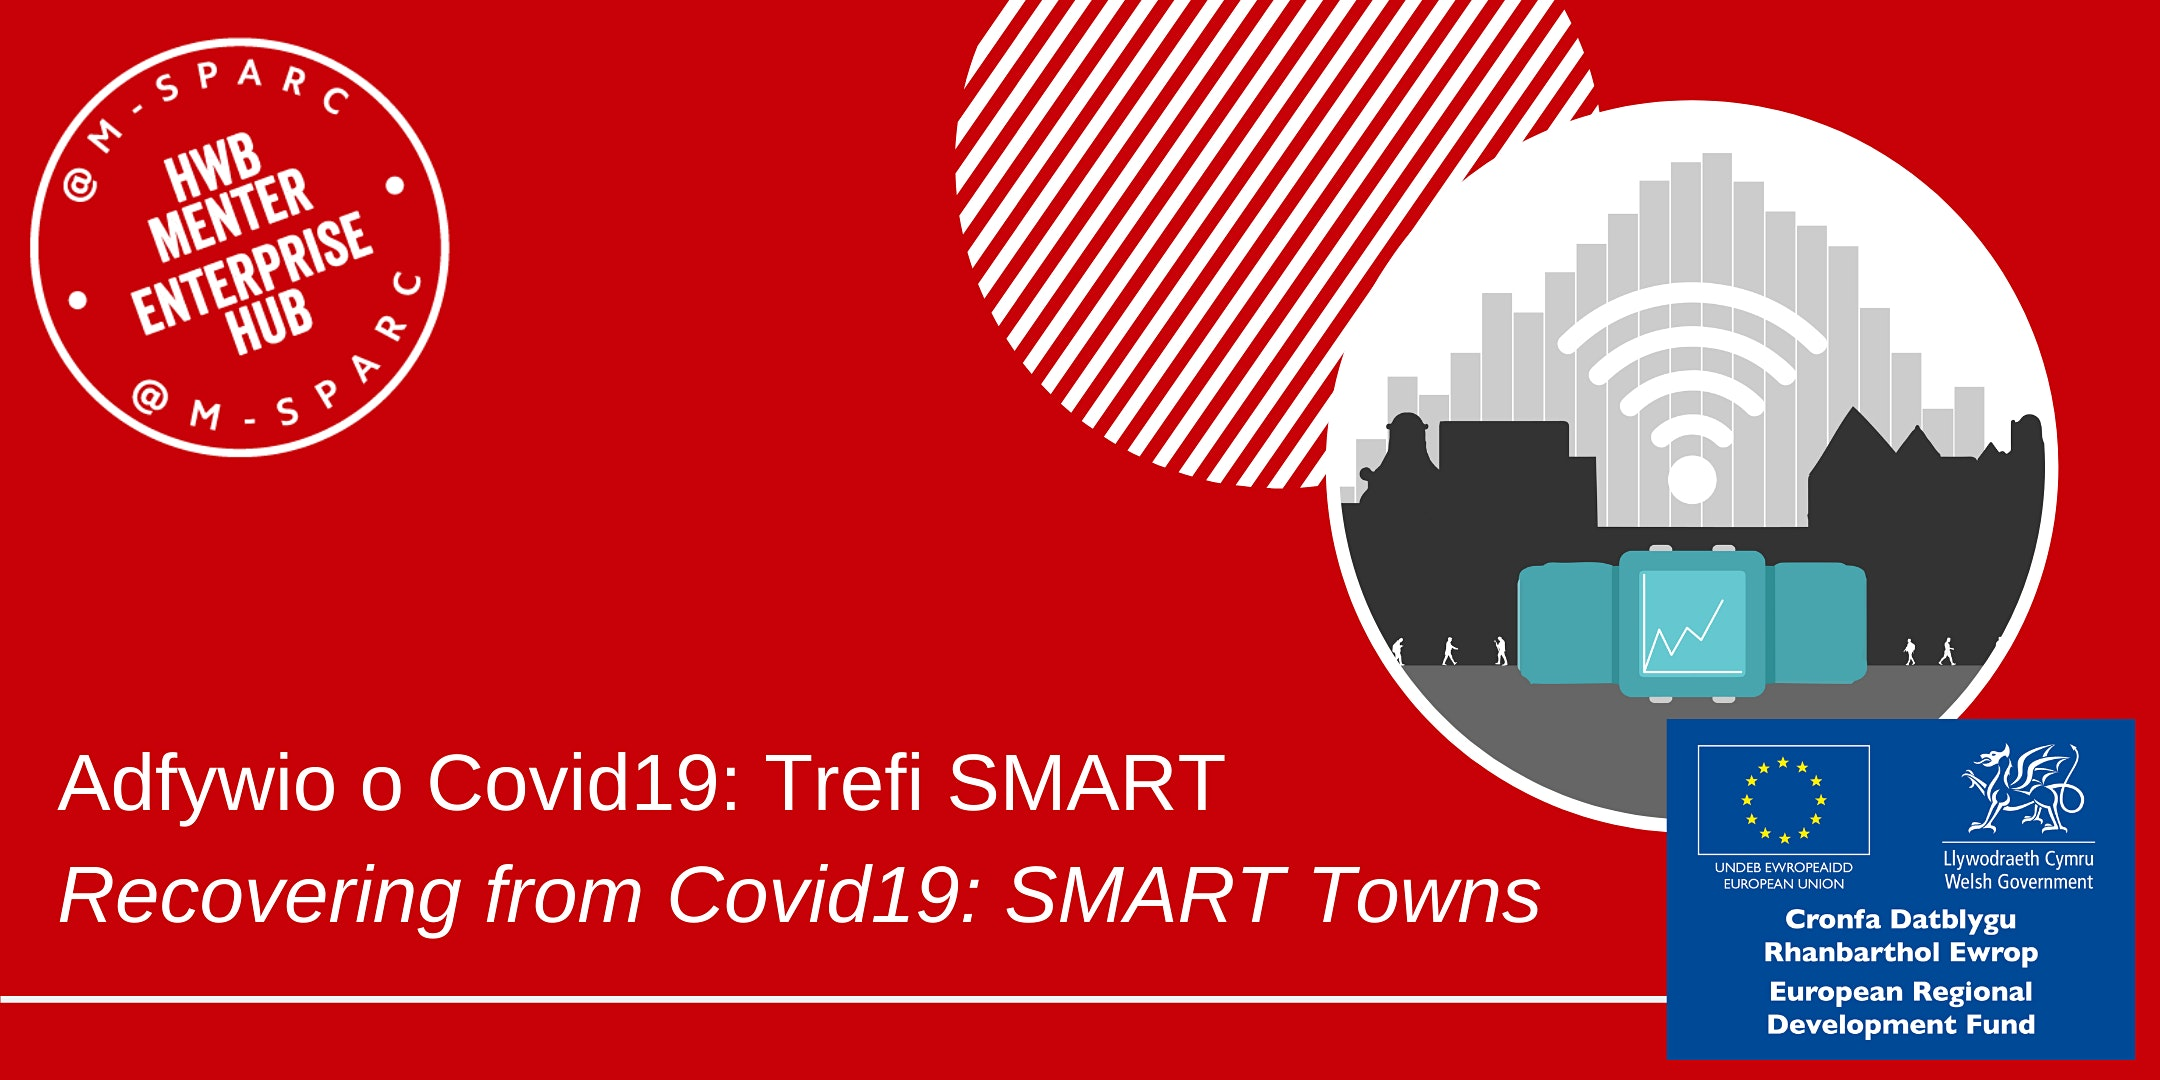 Adfywio o Covid19: Trefi SMART / Recovering from Covid19: SMART Towns